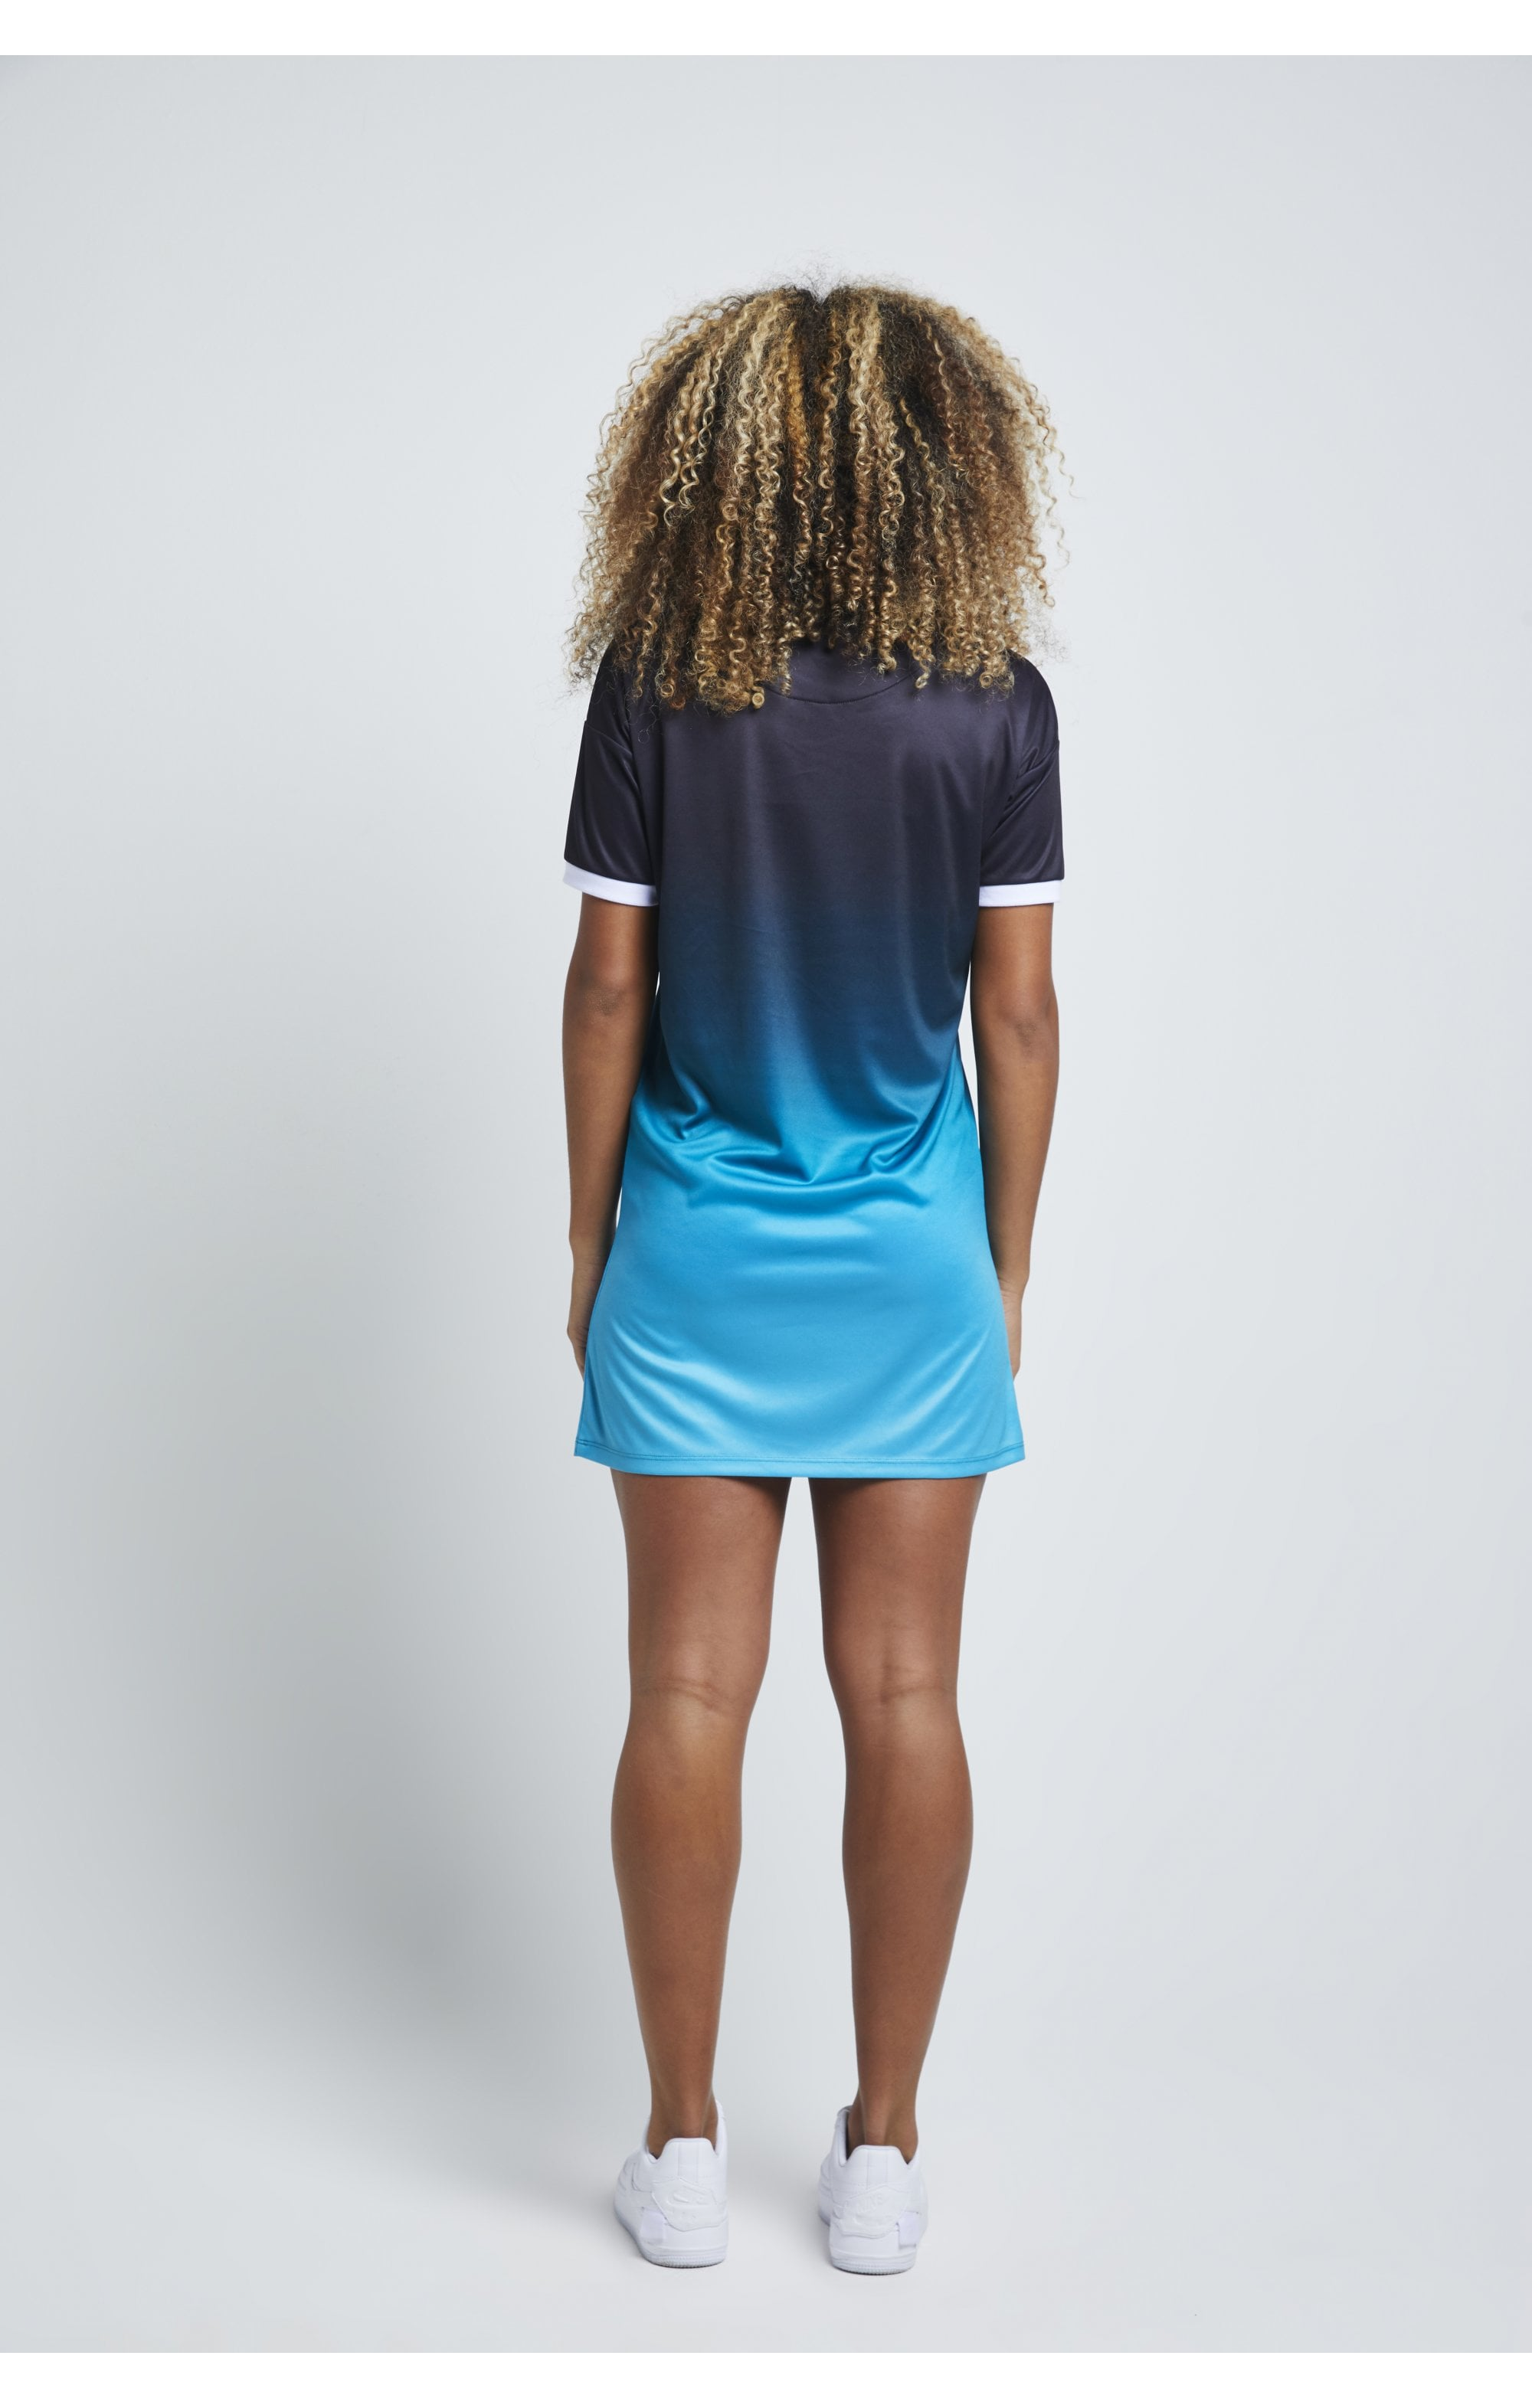 SikSilk Fade T-Shirt Dress - Black & Teal (5)